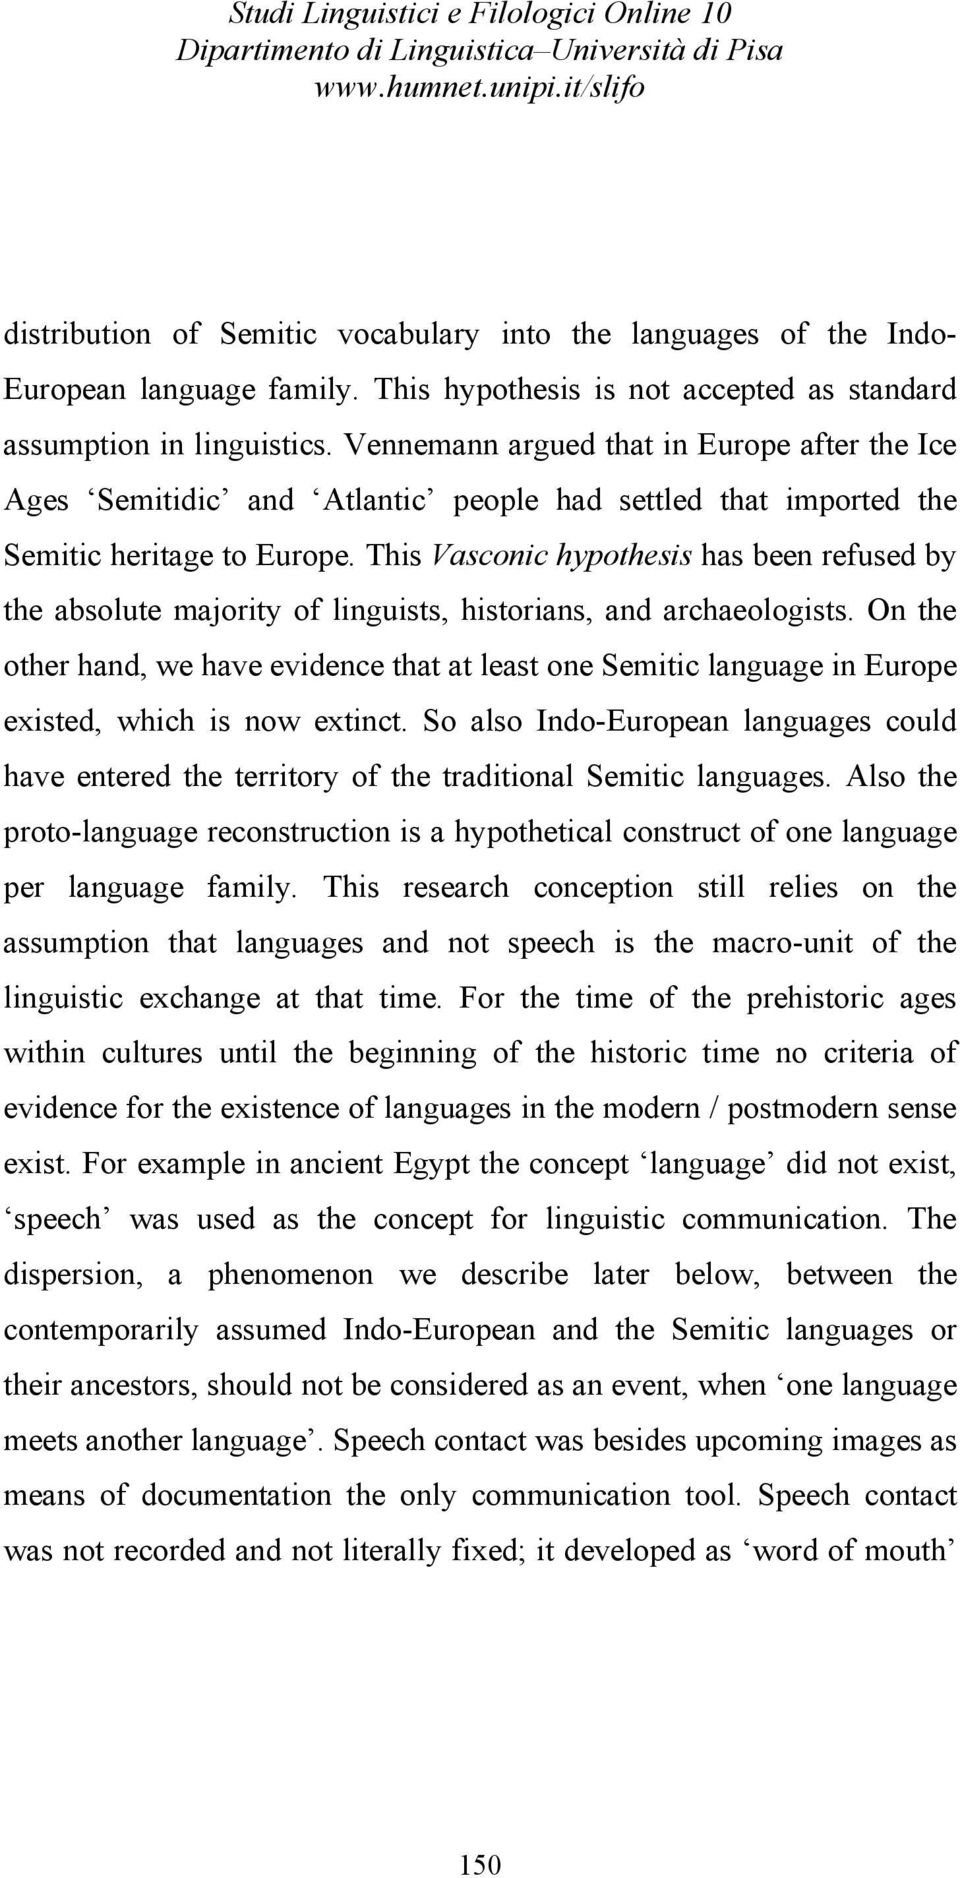 This Vasconic hypothesis has been refused by the absolute majority of linguists, historians, and archaeologists.